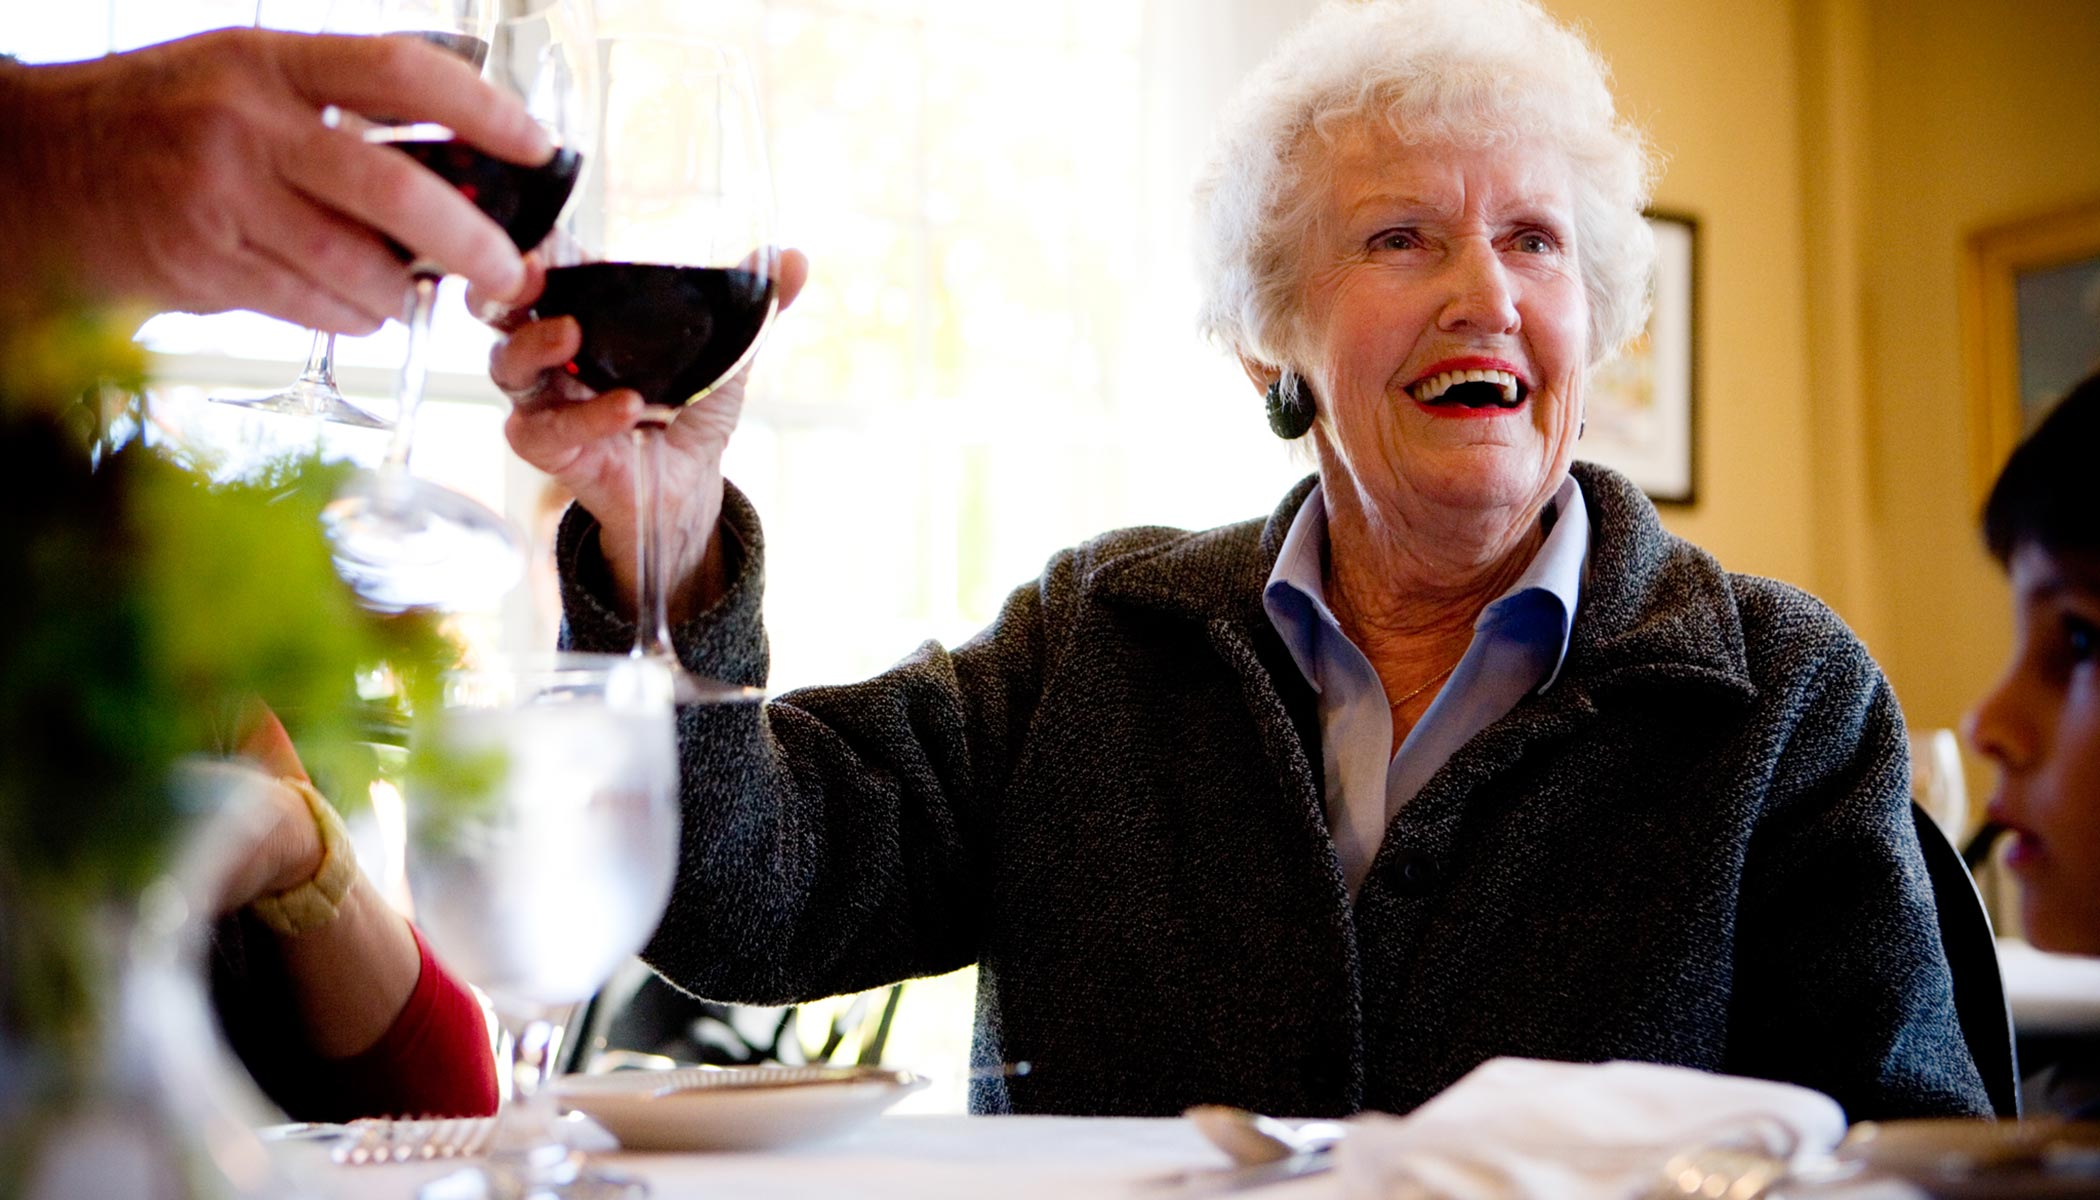 Faces-of-joy-old-woman-with-wine